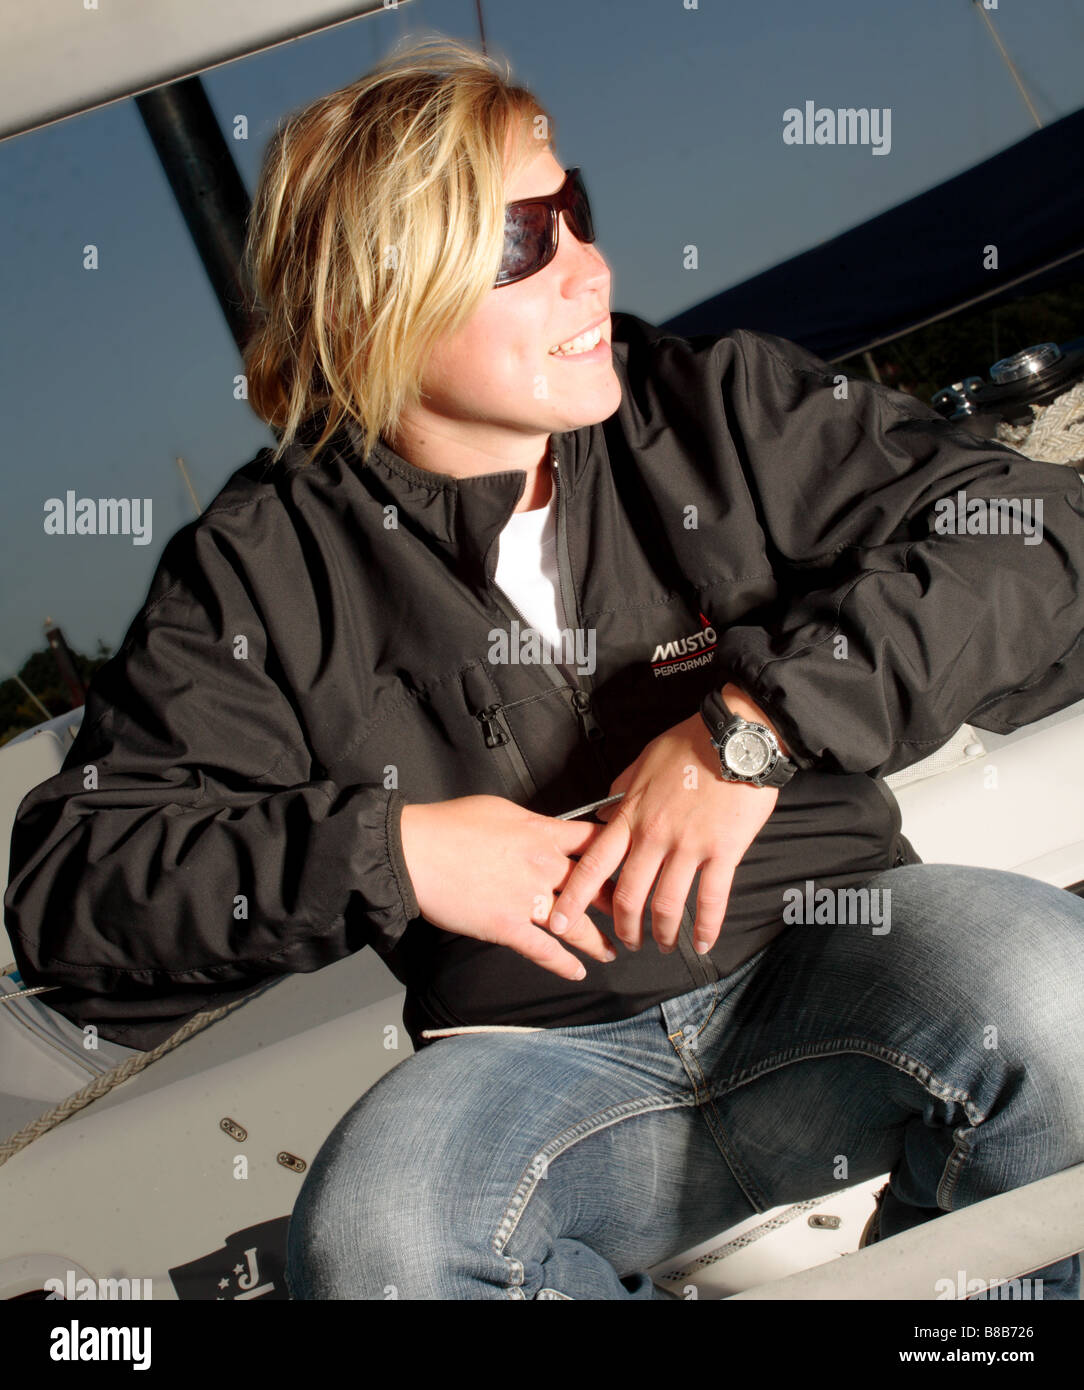 girl age 20-25 on a yacht - Stock Image